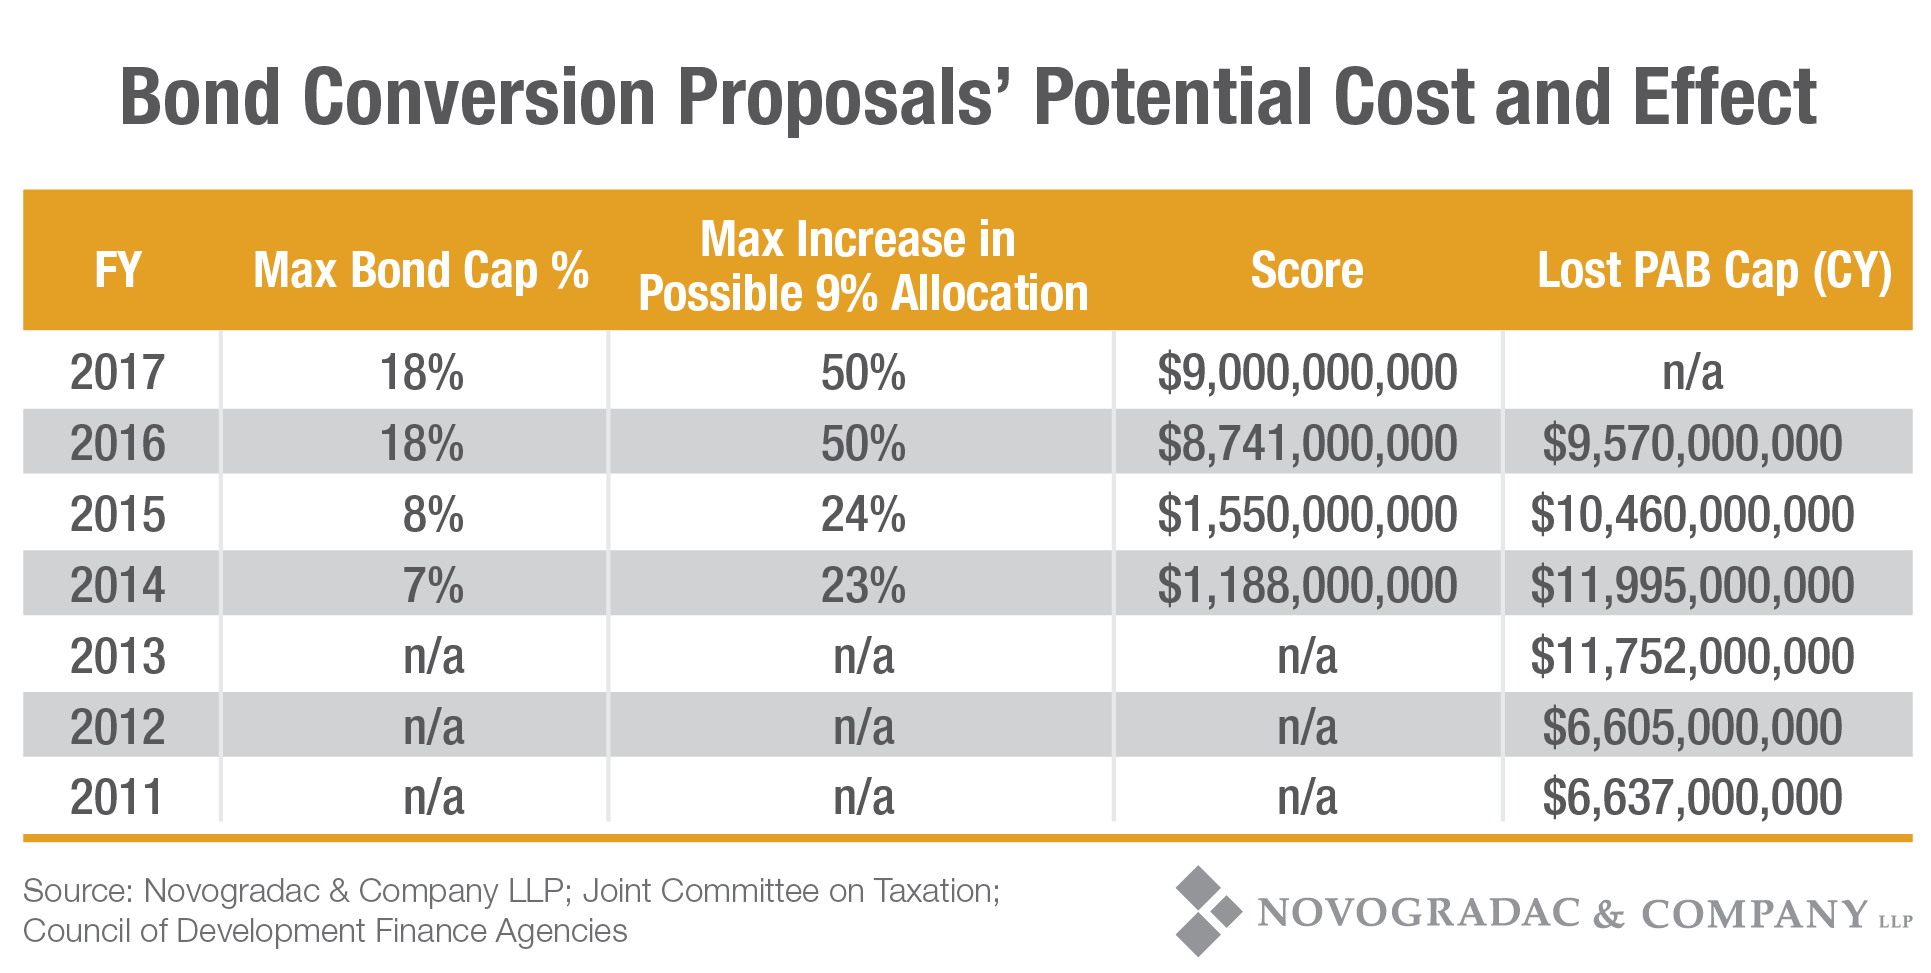 Blog Chart Bond Conversion Proposals' Potential Cost and Effect 2017